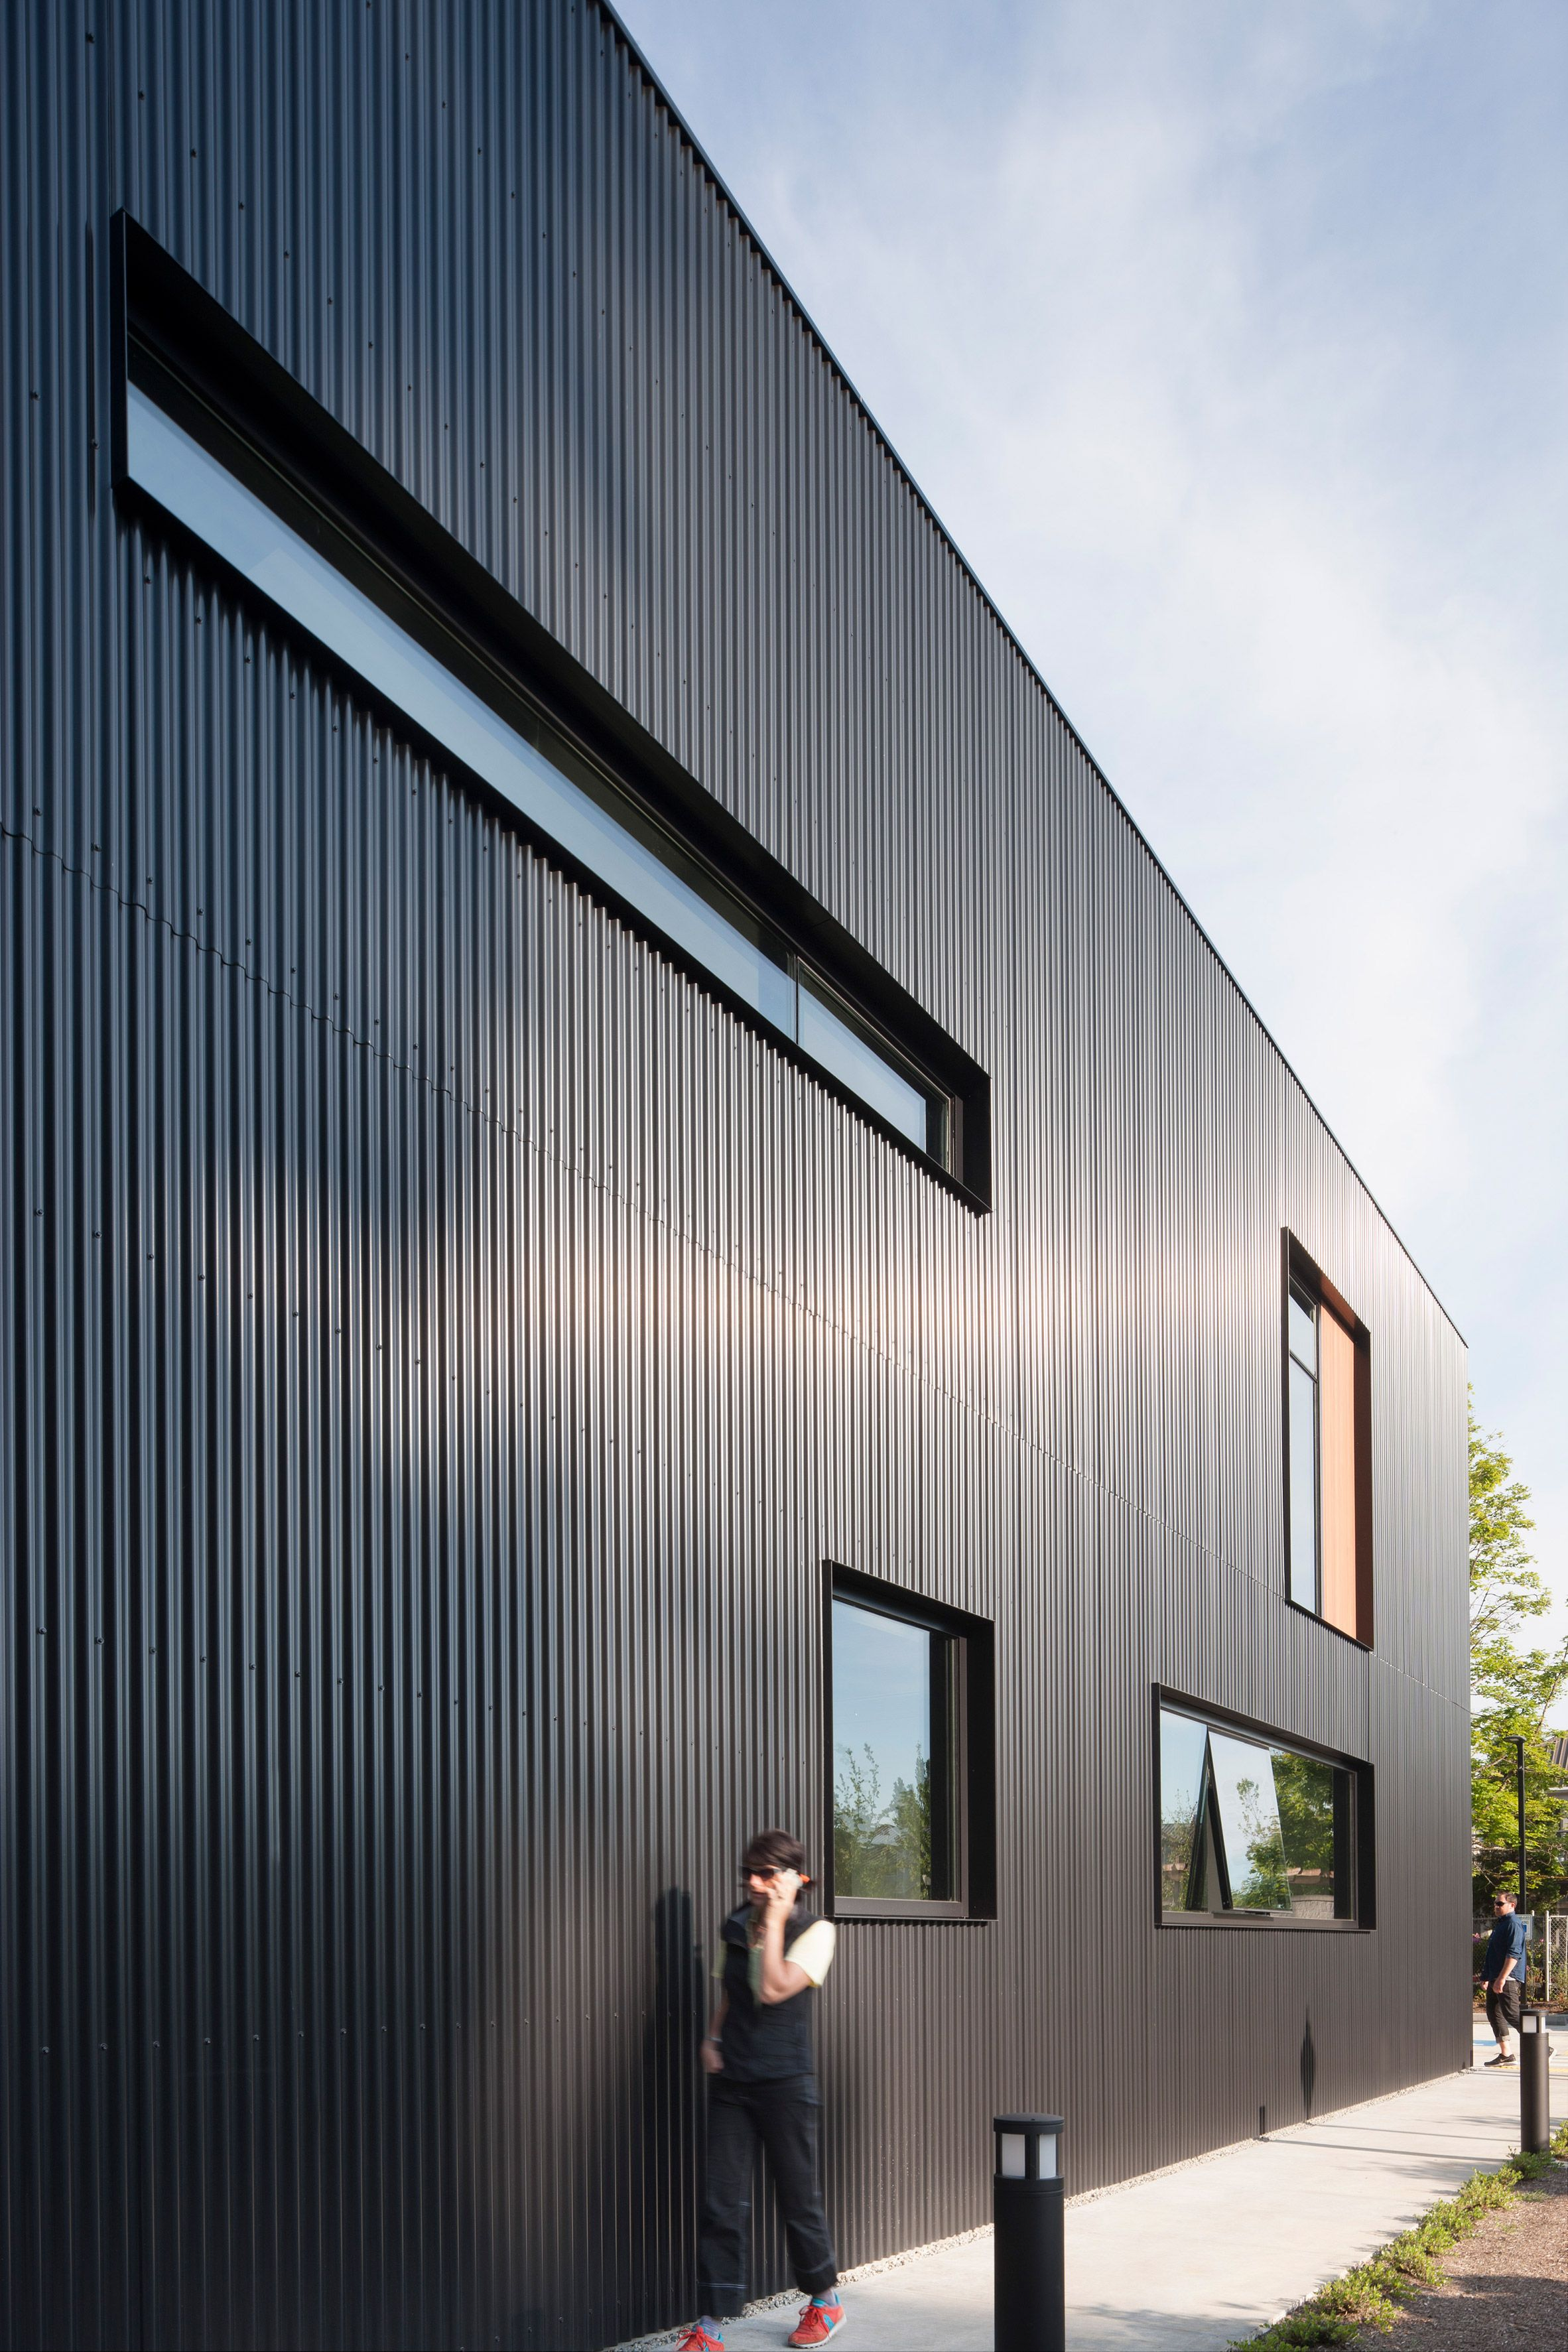 Mercer Island Fire Station By Miller Hull Corrugated Metal Clads Exterior Walls With Red Cedar Used Metal Building Designs House Cladding Factory Architecture